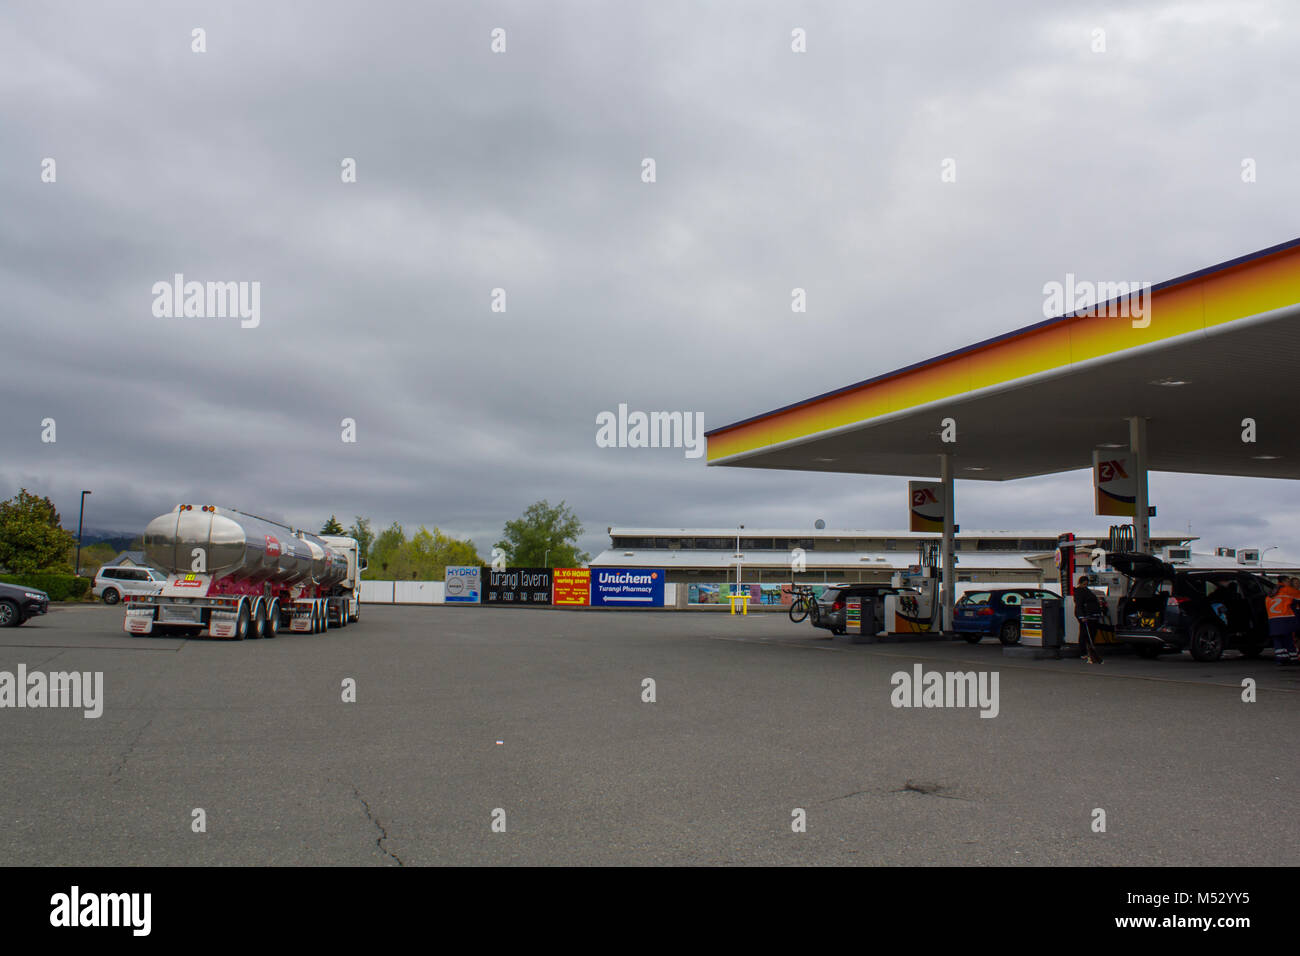 Shell Gasoline Stock Photos & Shell Gasoline Stock Images